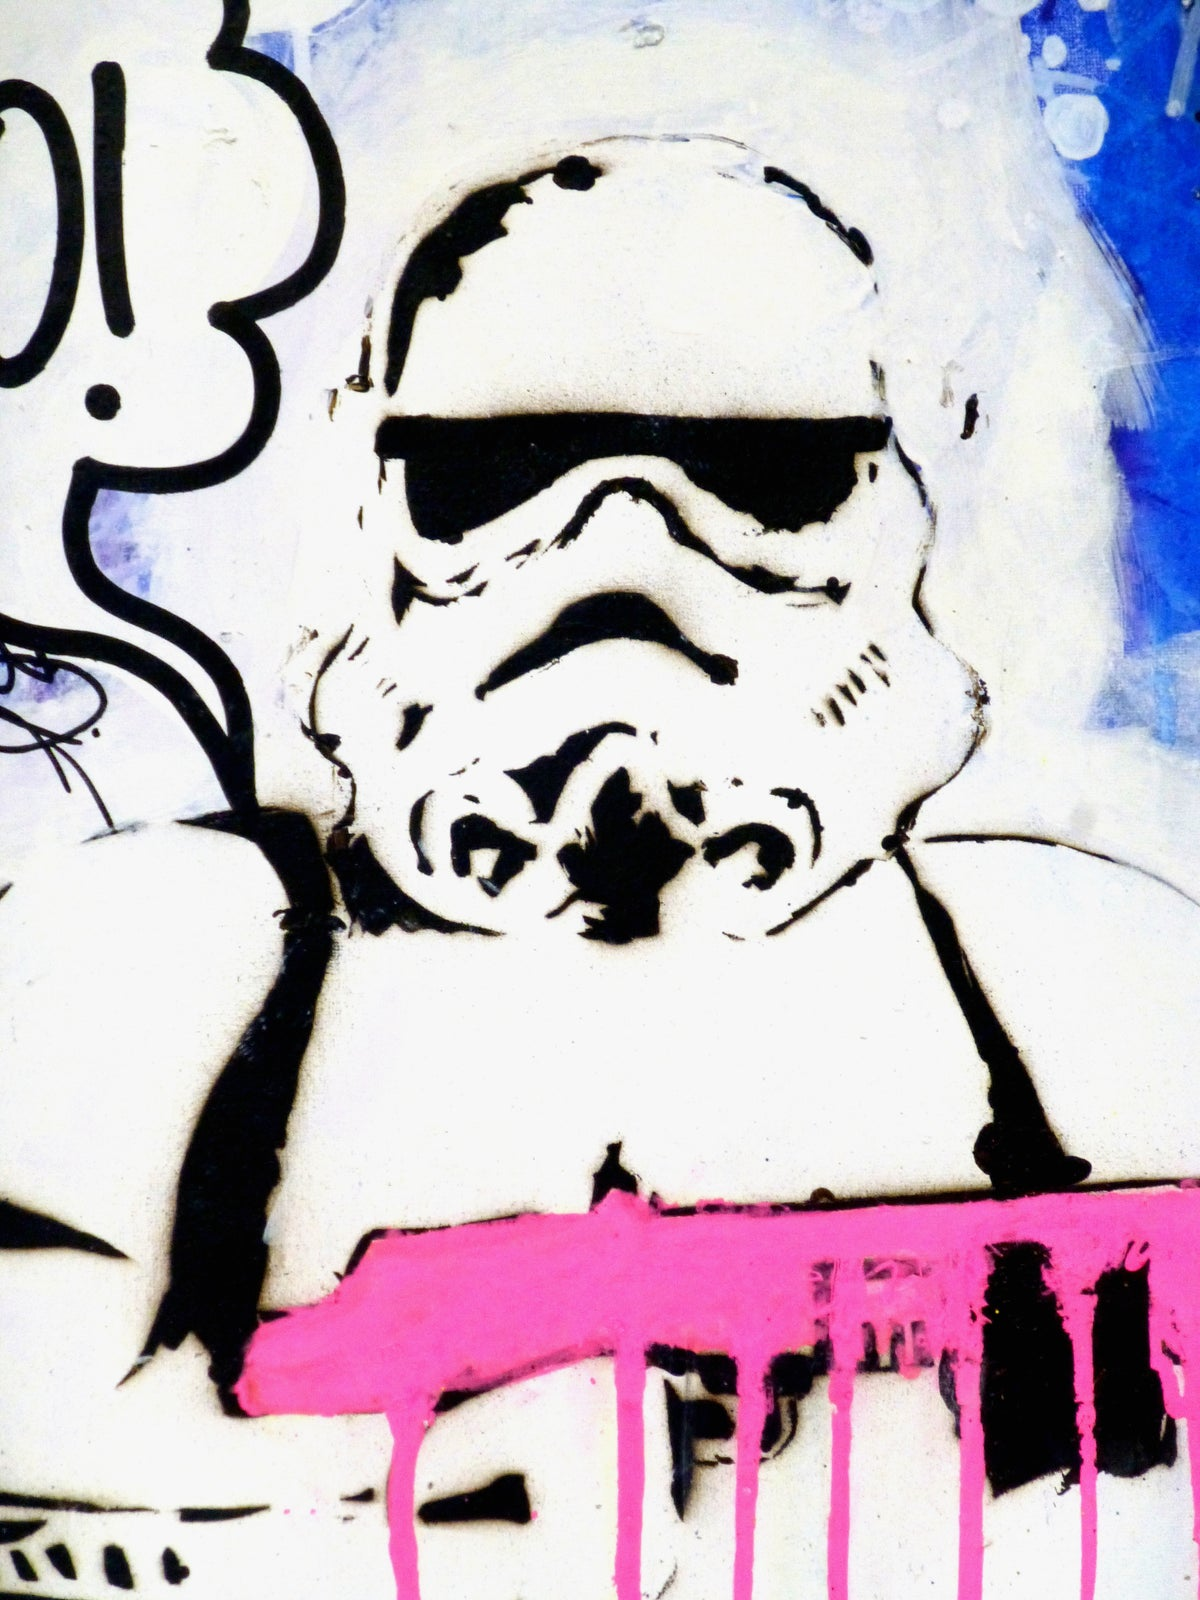 Image of YO! Stormtrooper, on blue.